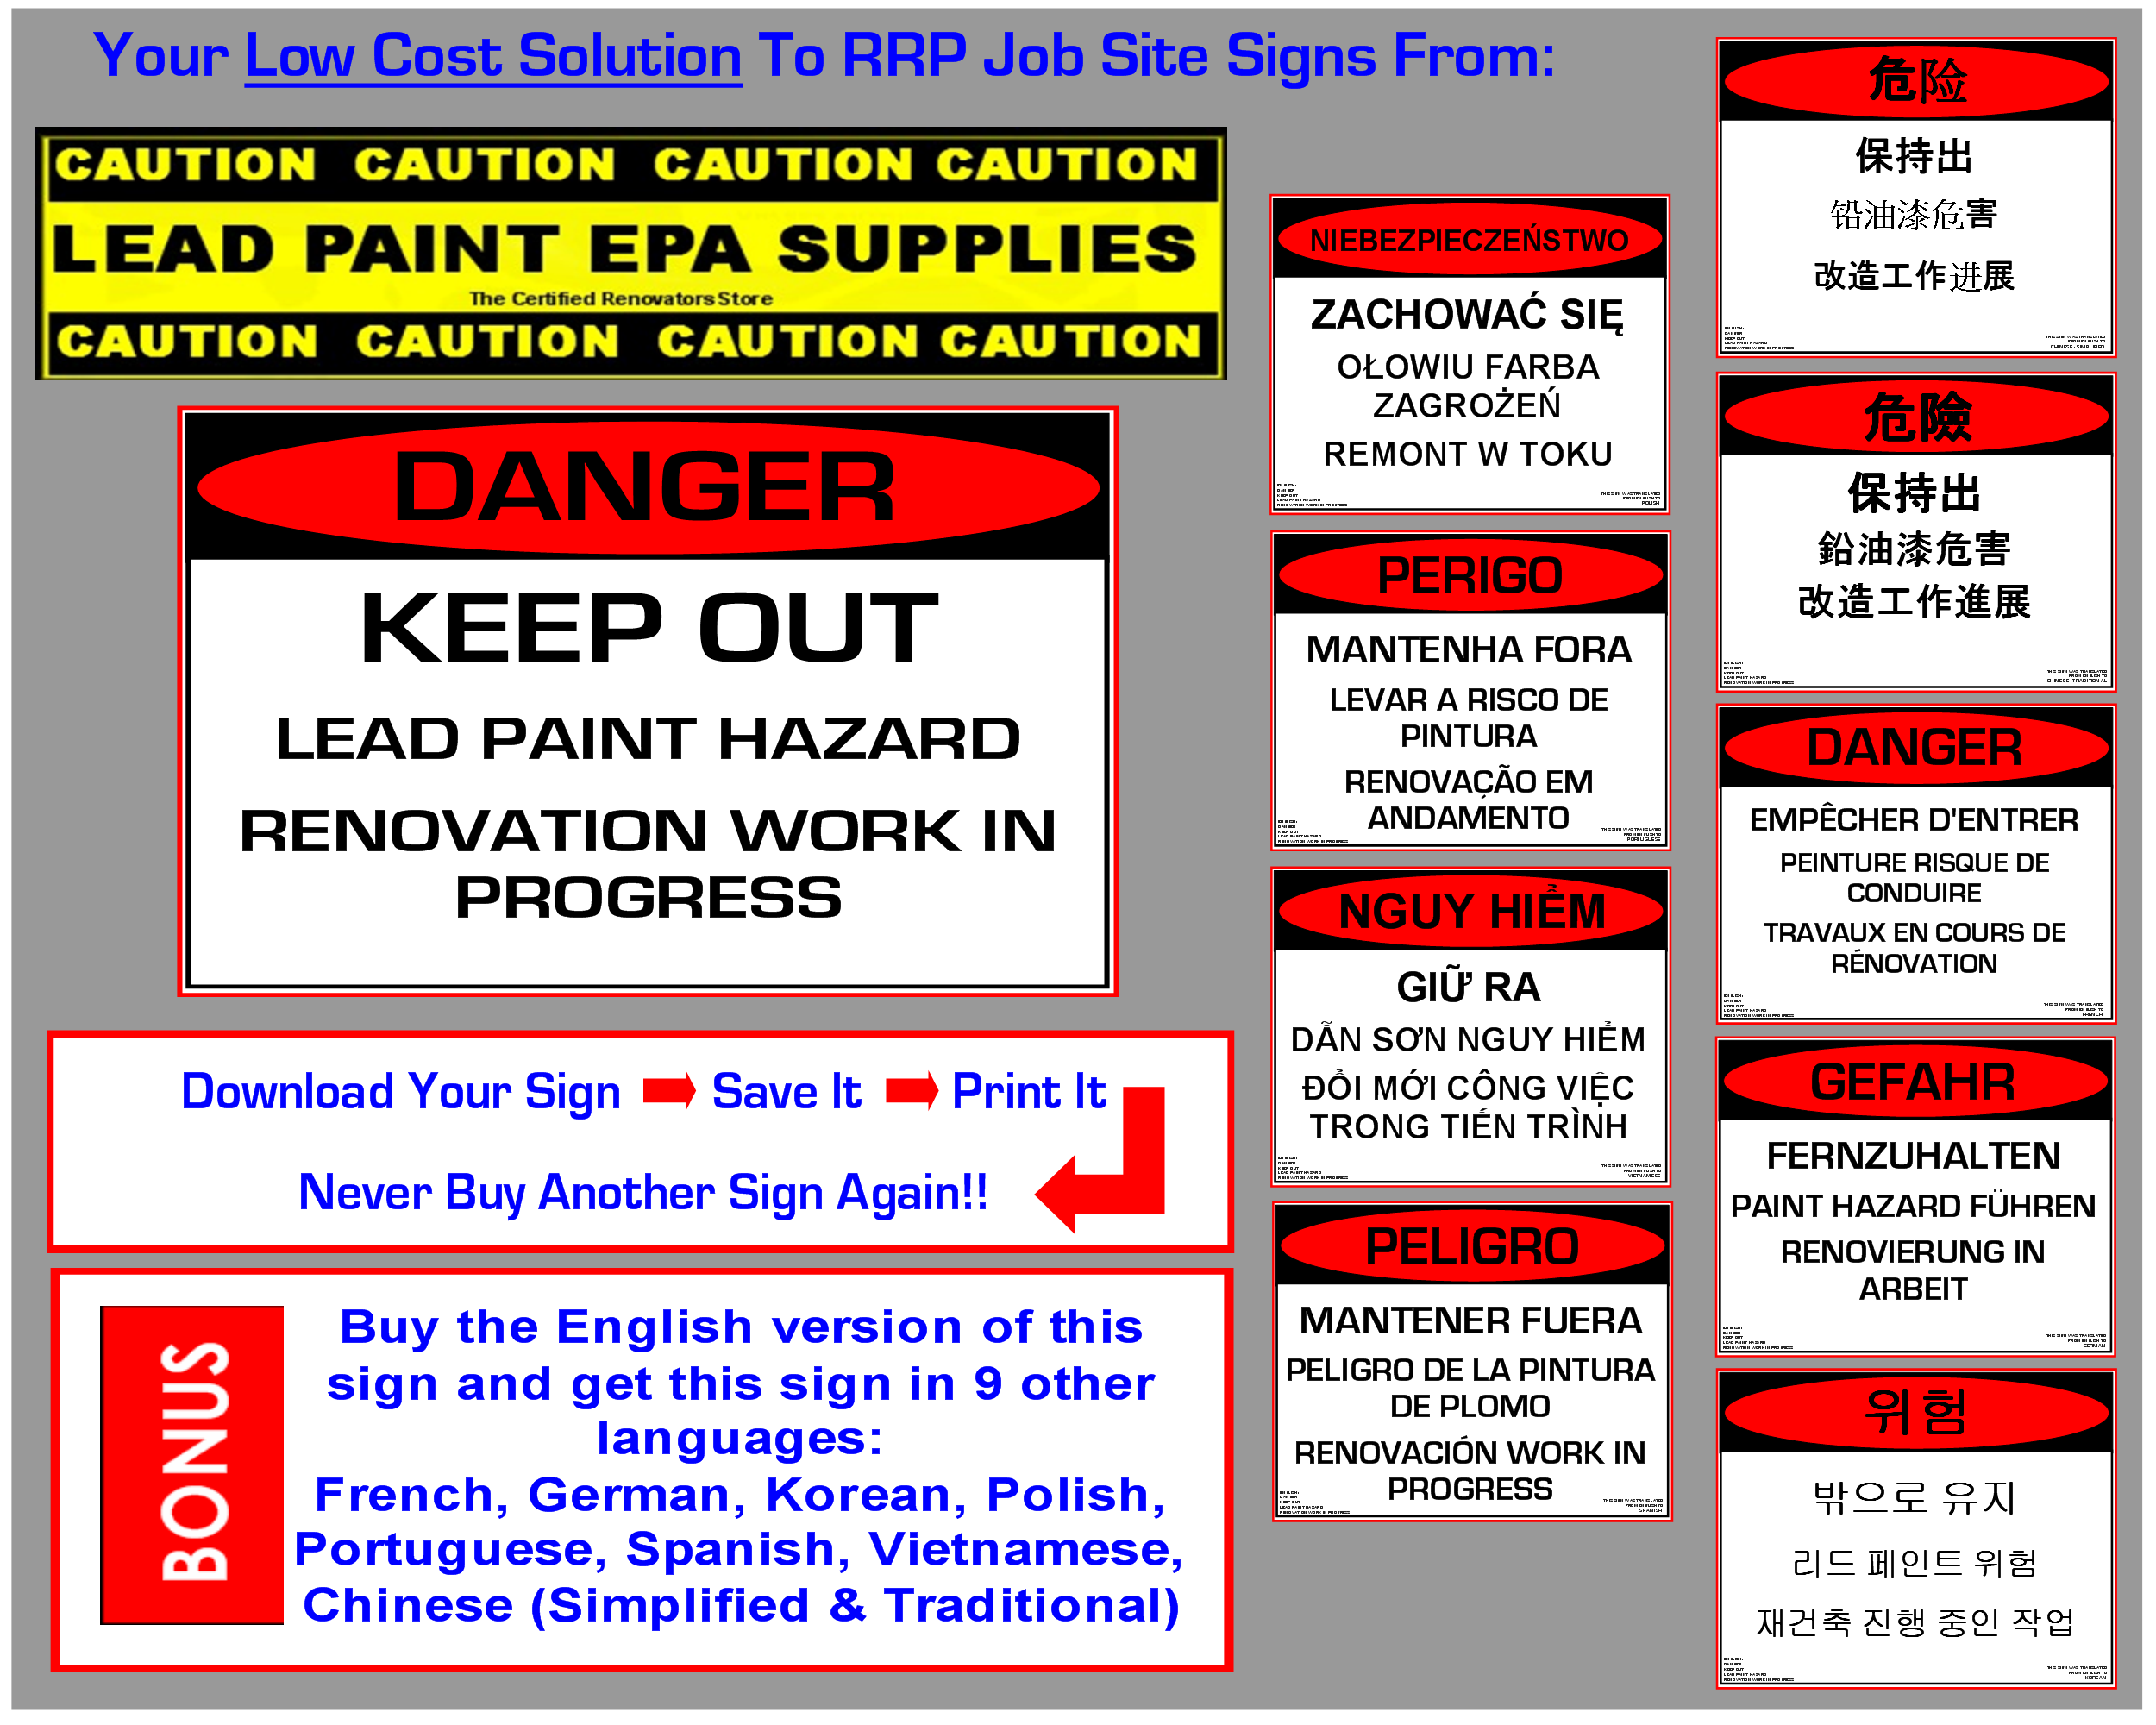 Rrp job site sign danger keep out renovation 10 languages for What are the dangers of lead paint